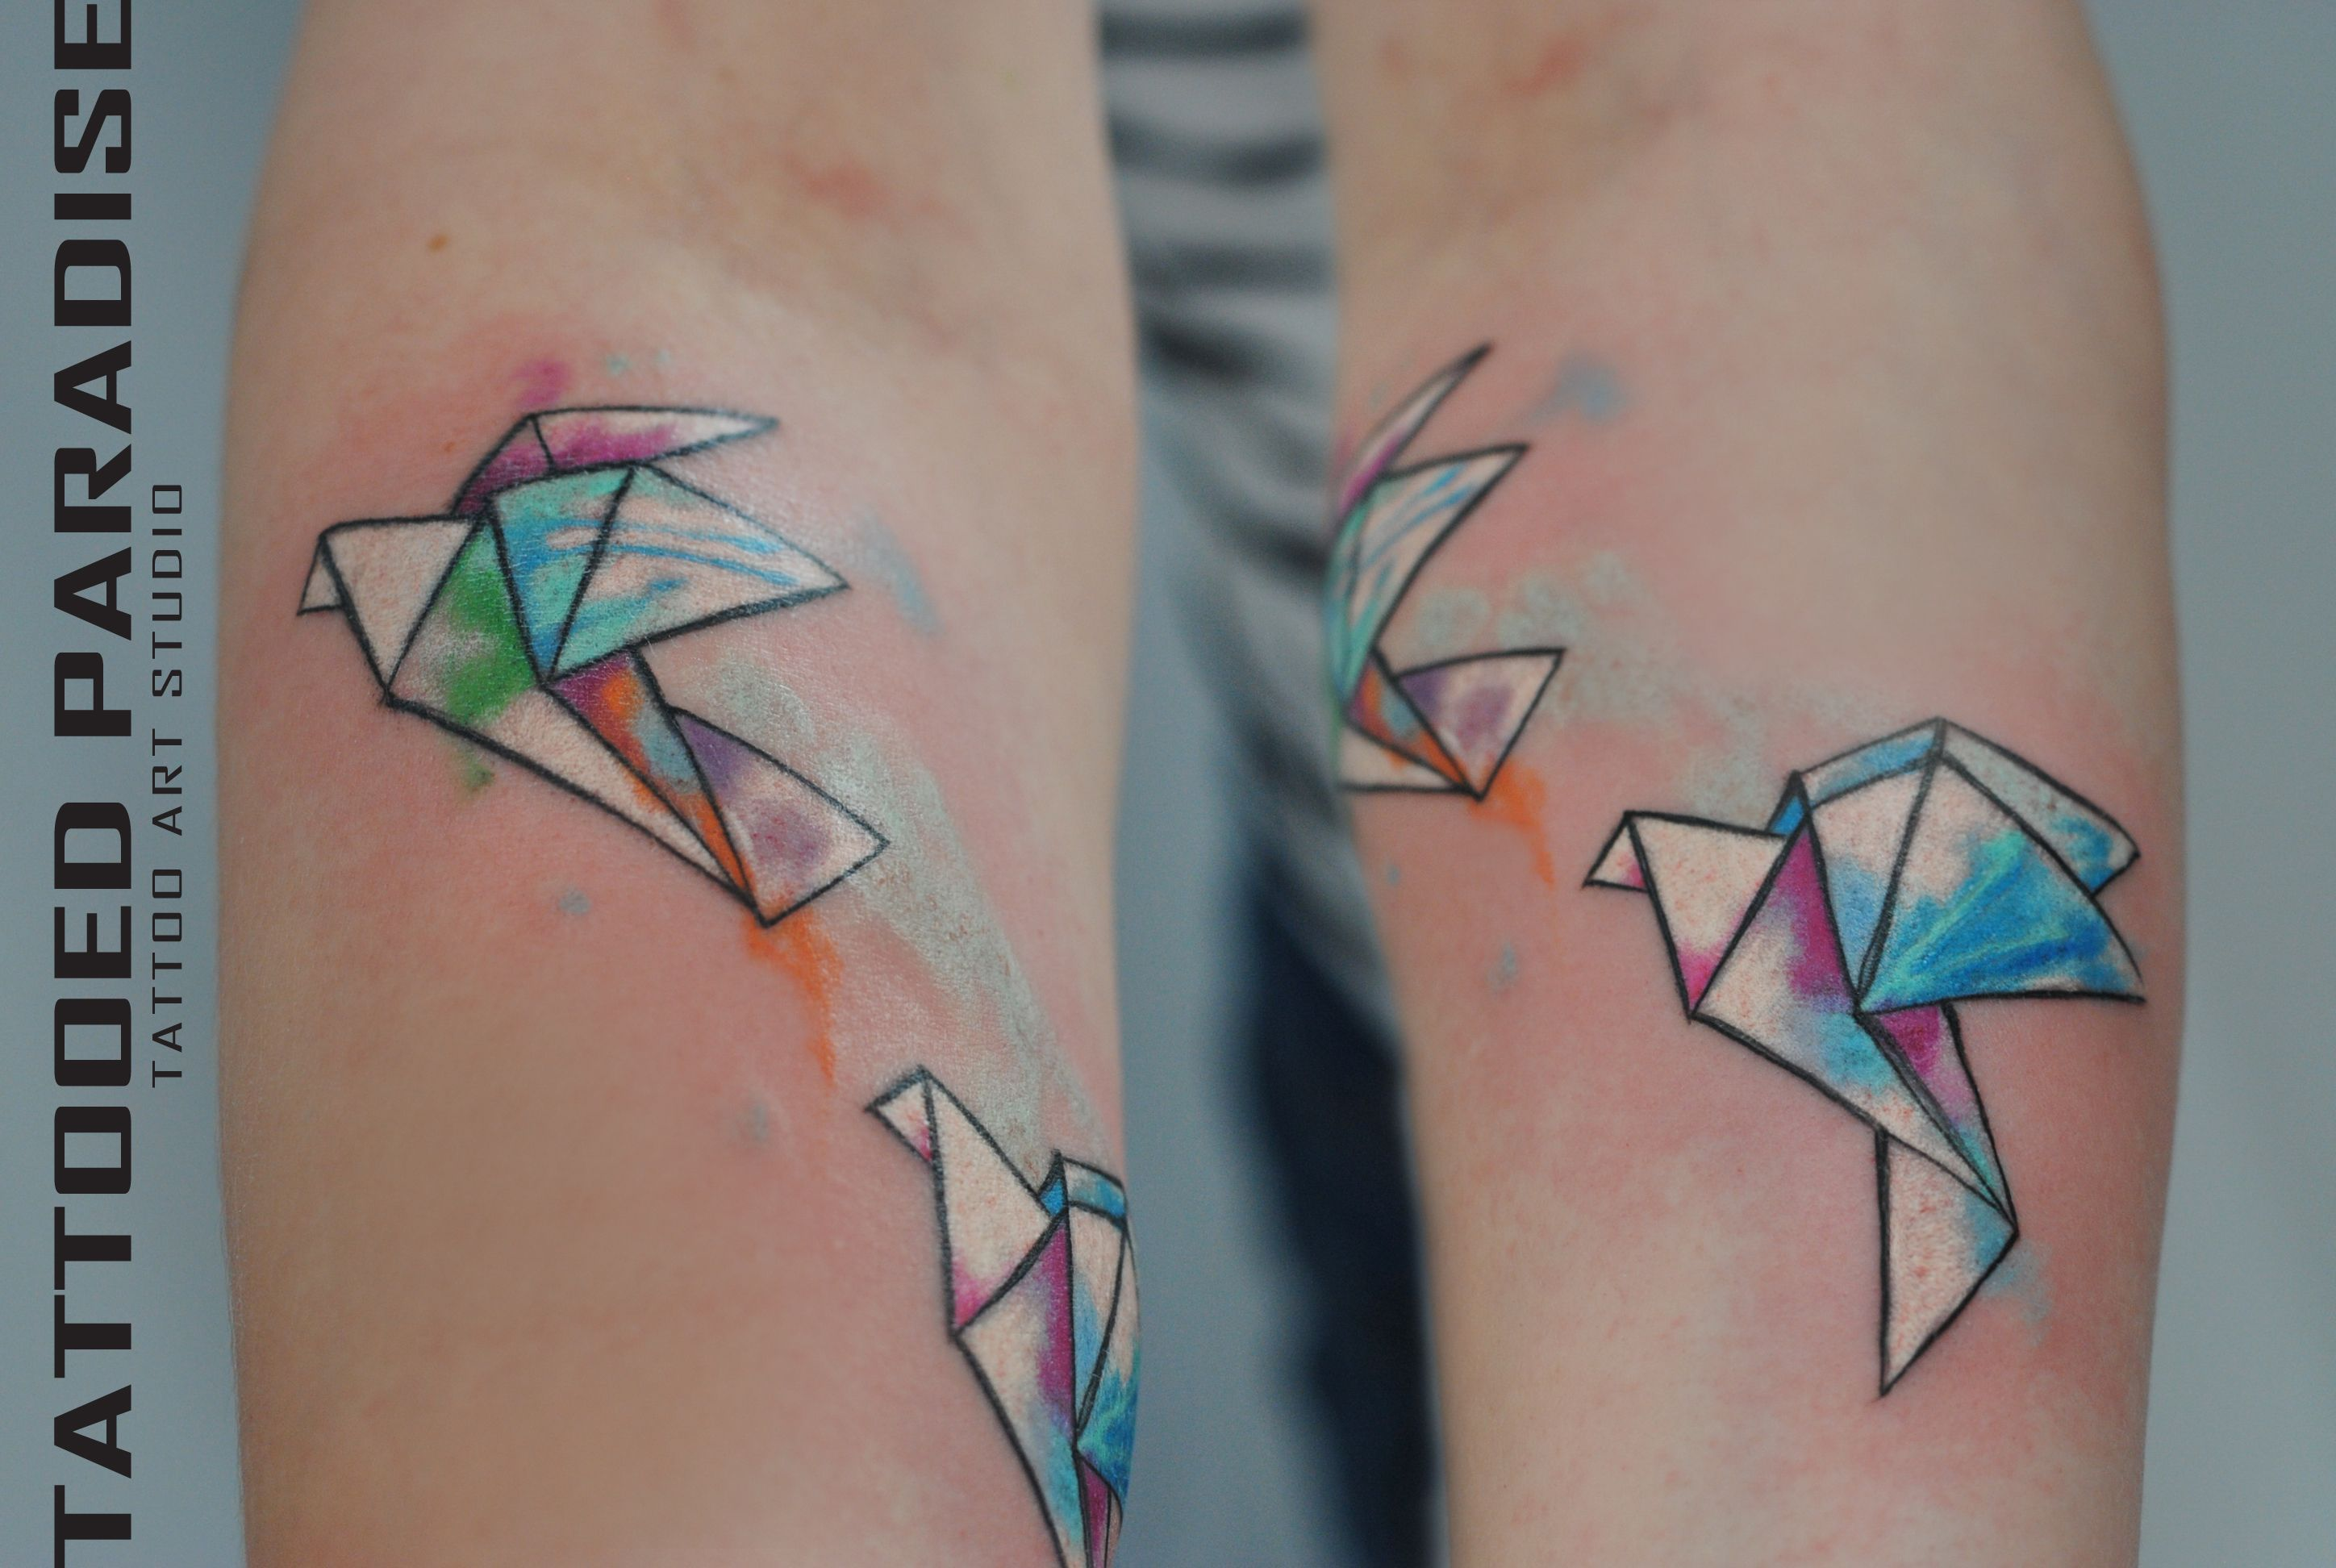 Origami watercolor tattoo | Tattoo artist: Aleksandra ... - photo#17